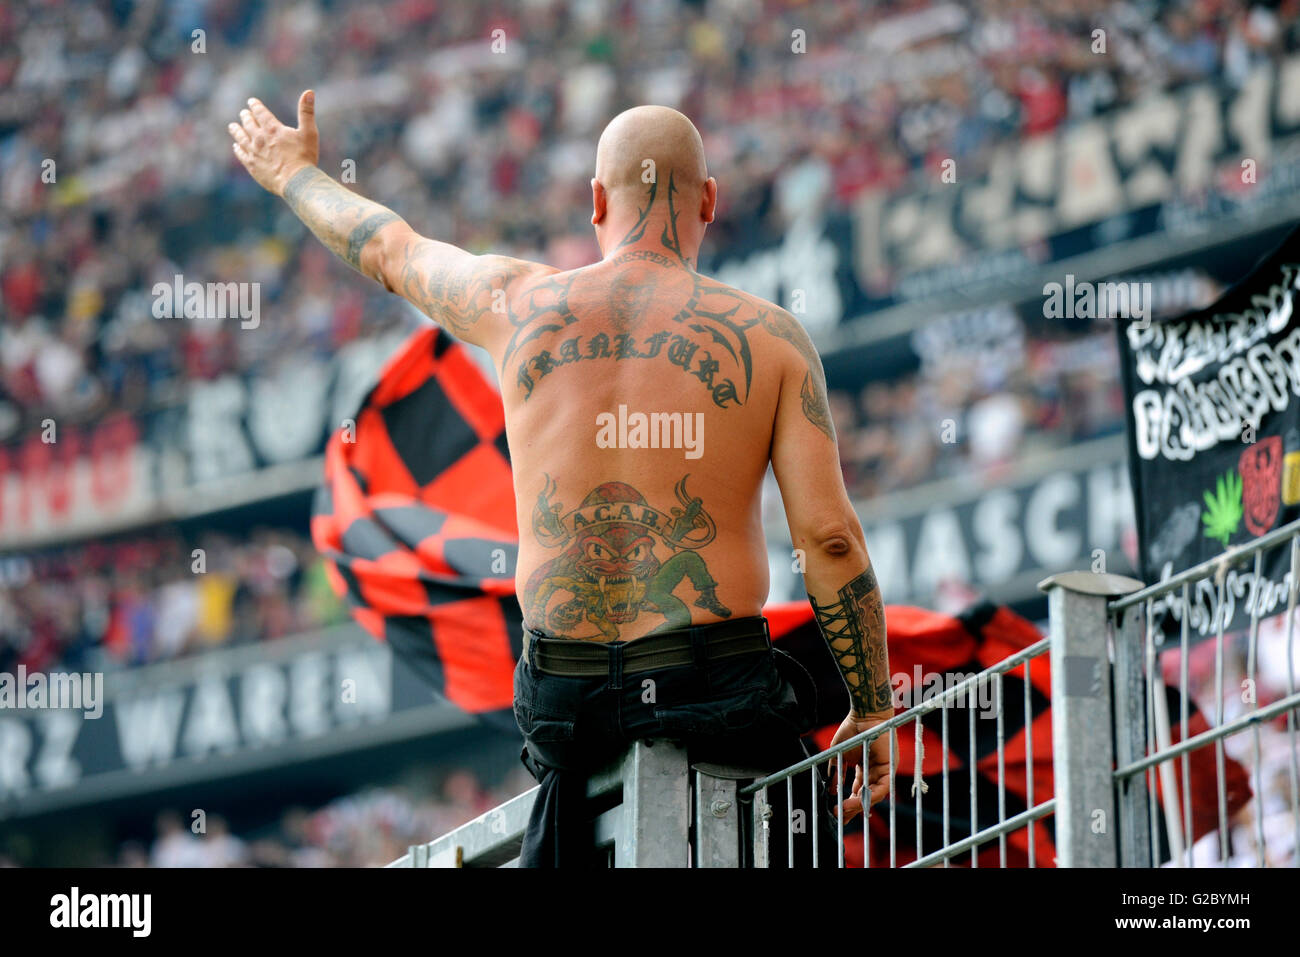 tattoo fan stockfotos tattoo fan bilder alamy. Black Bedroom Furniture Sets. Home Design Ideas